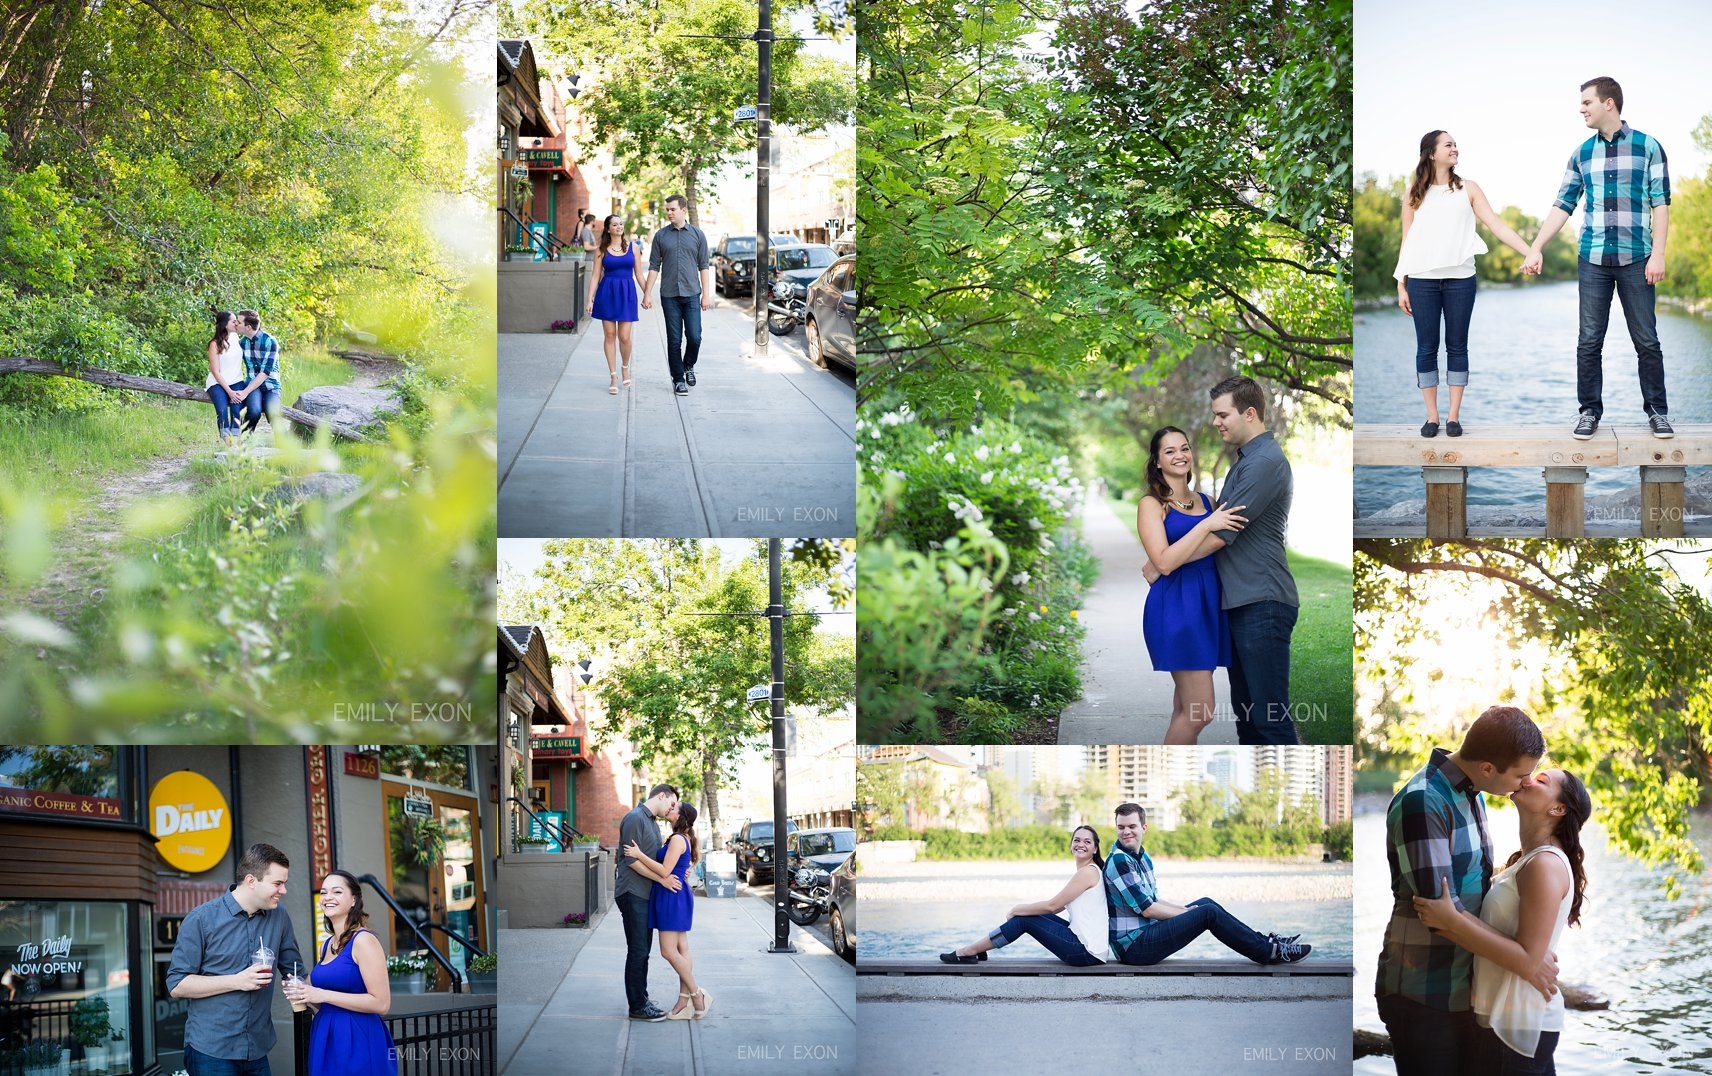 Calgary Wedding Photographer - Emily Exon_2470